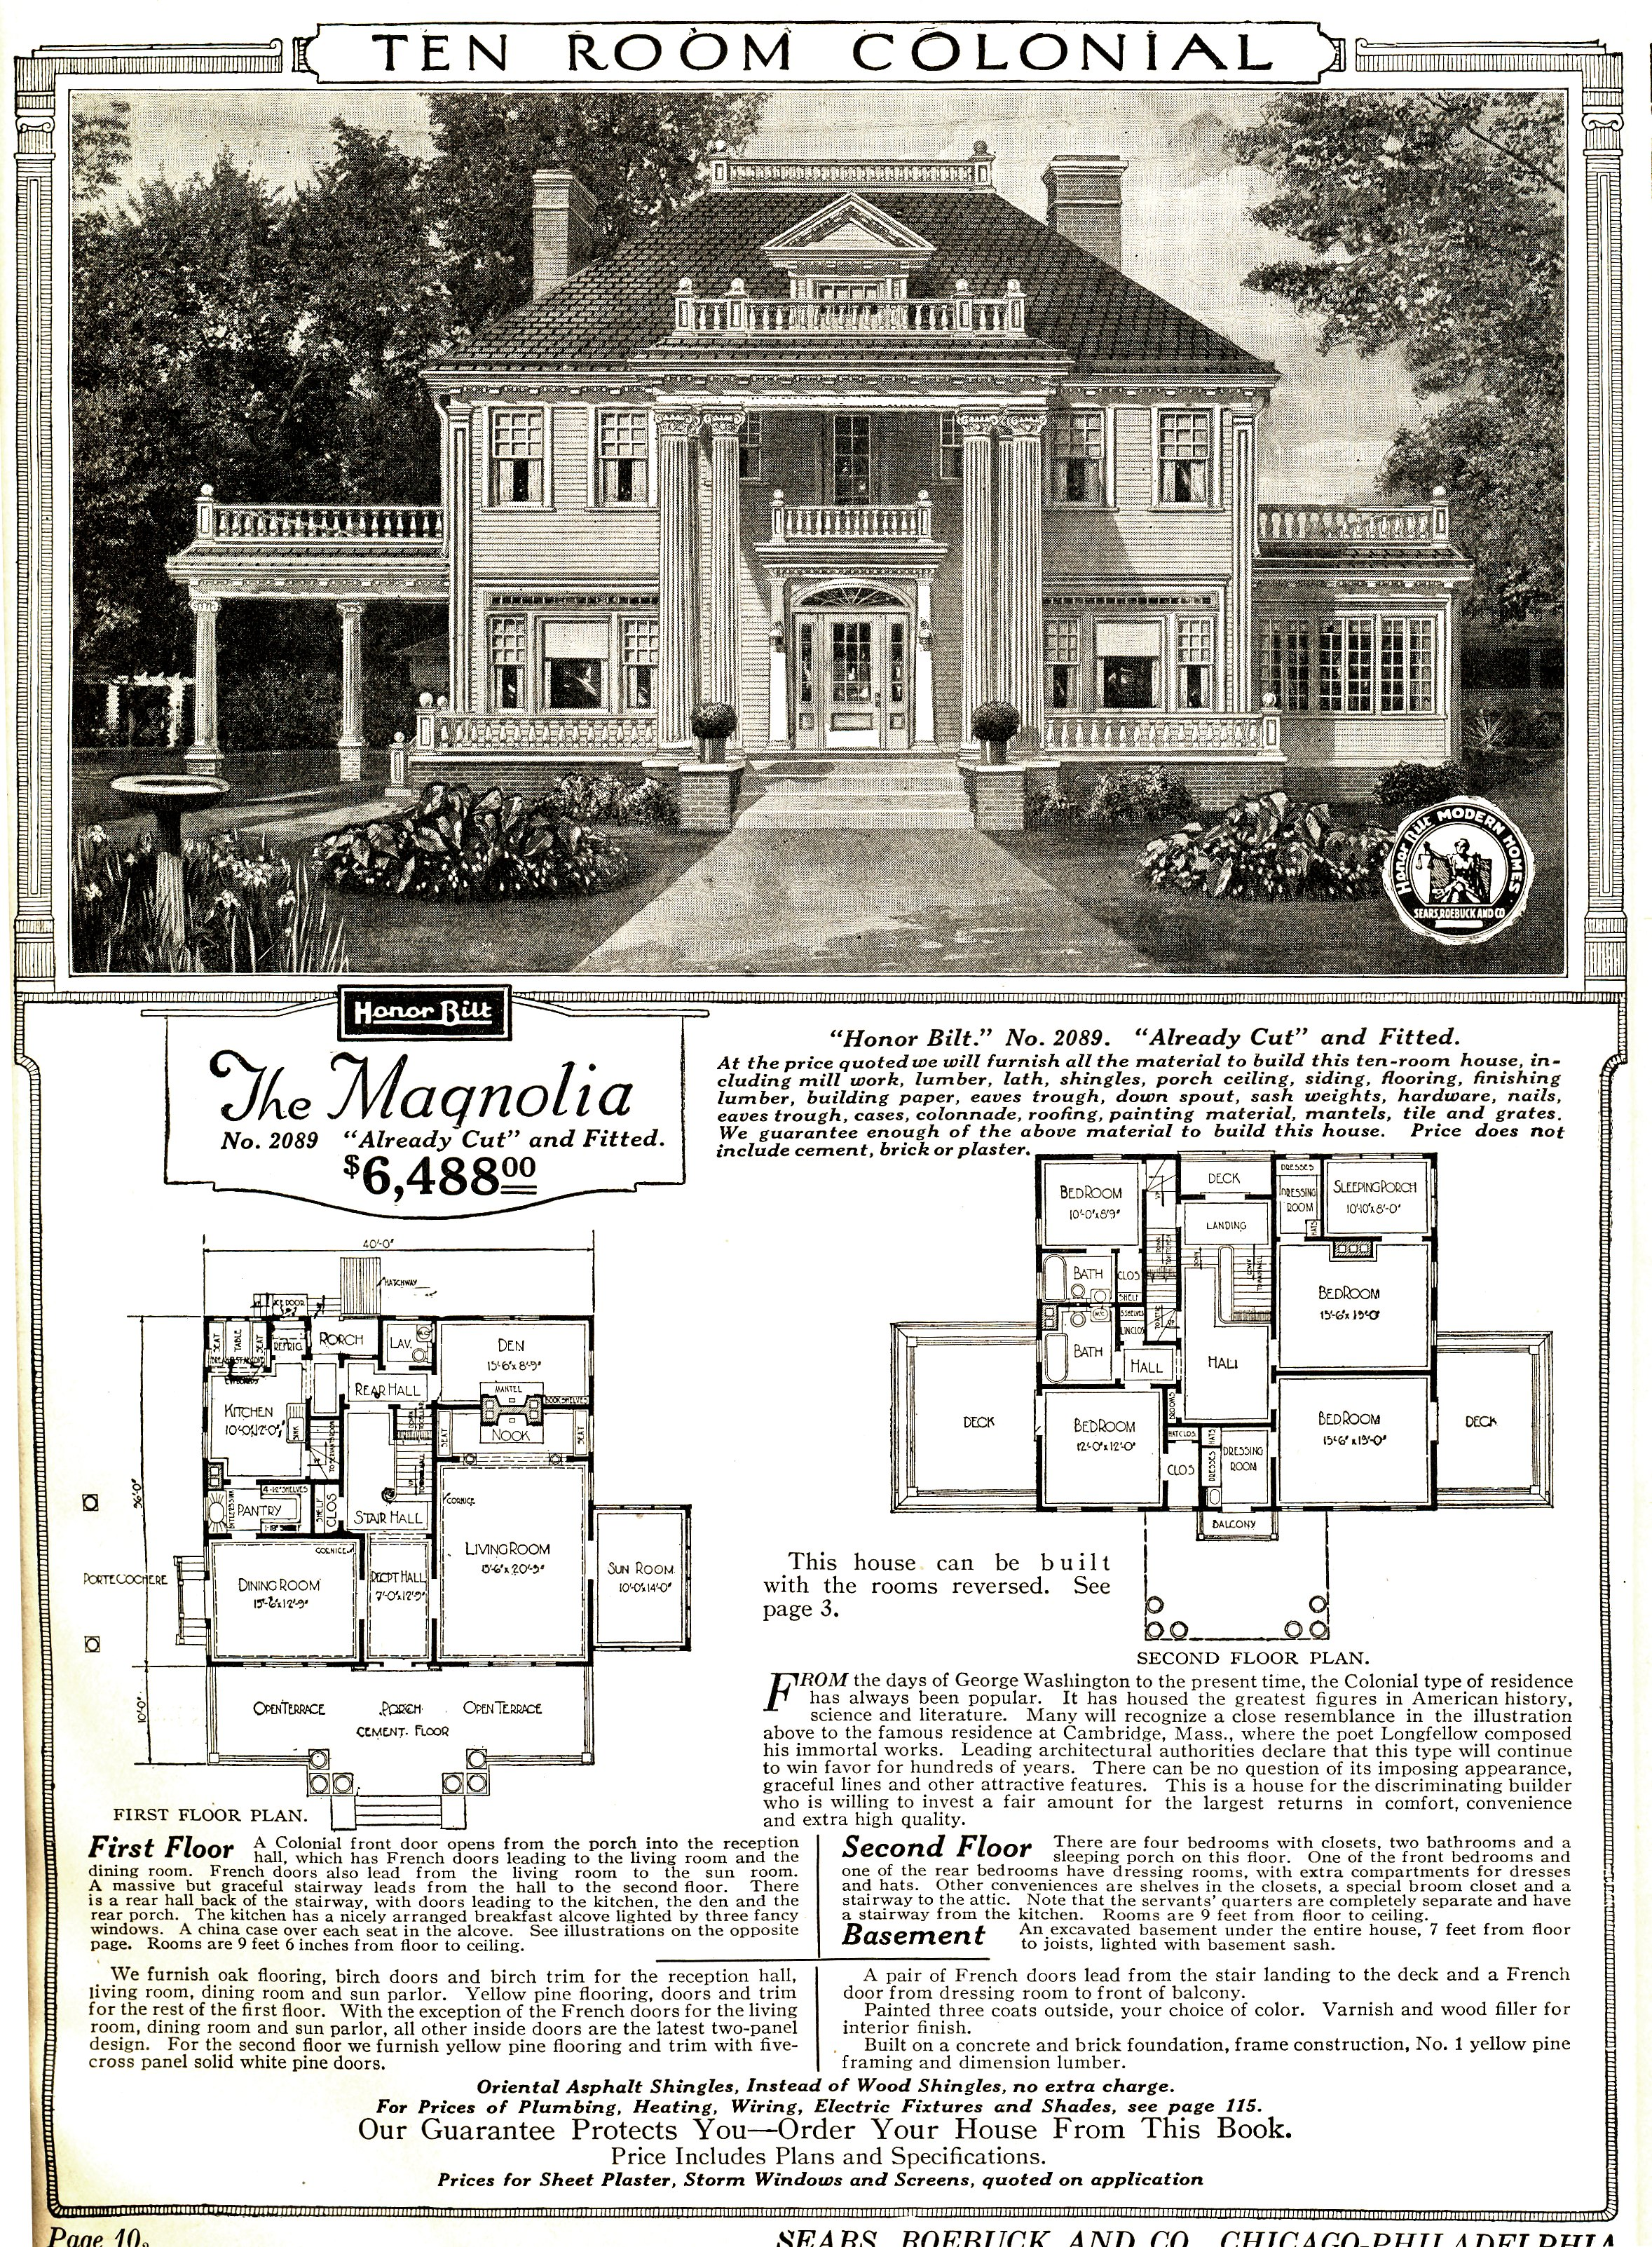 Domayne Beds Catalogue File Sears Magnolia Catalog Image Jpg Wikipedia